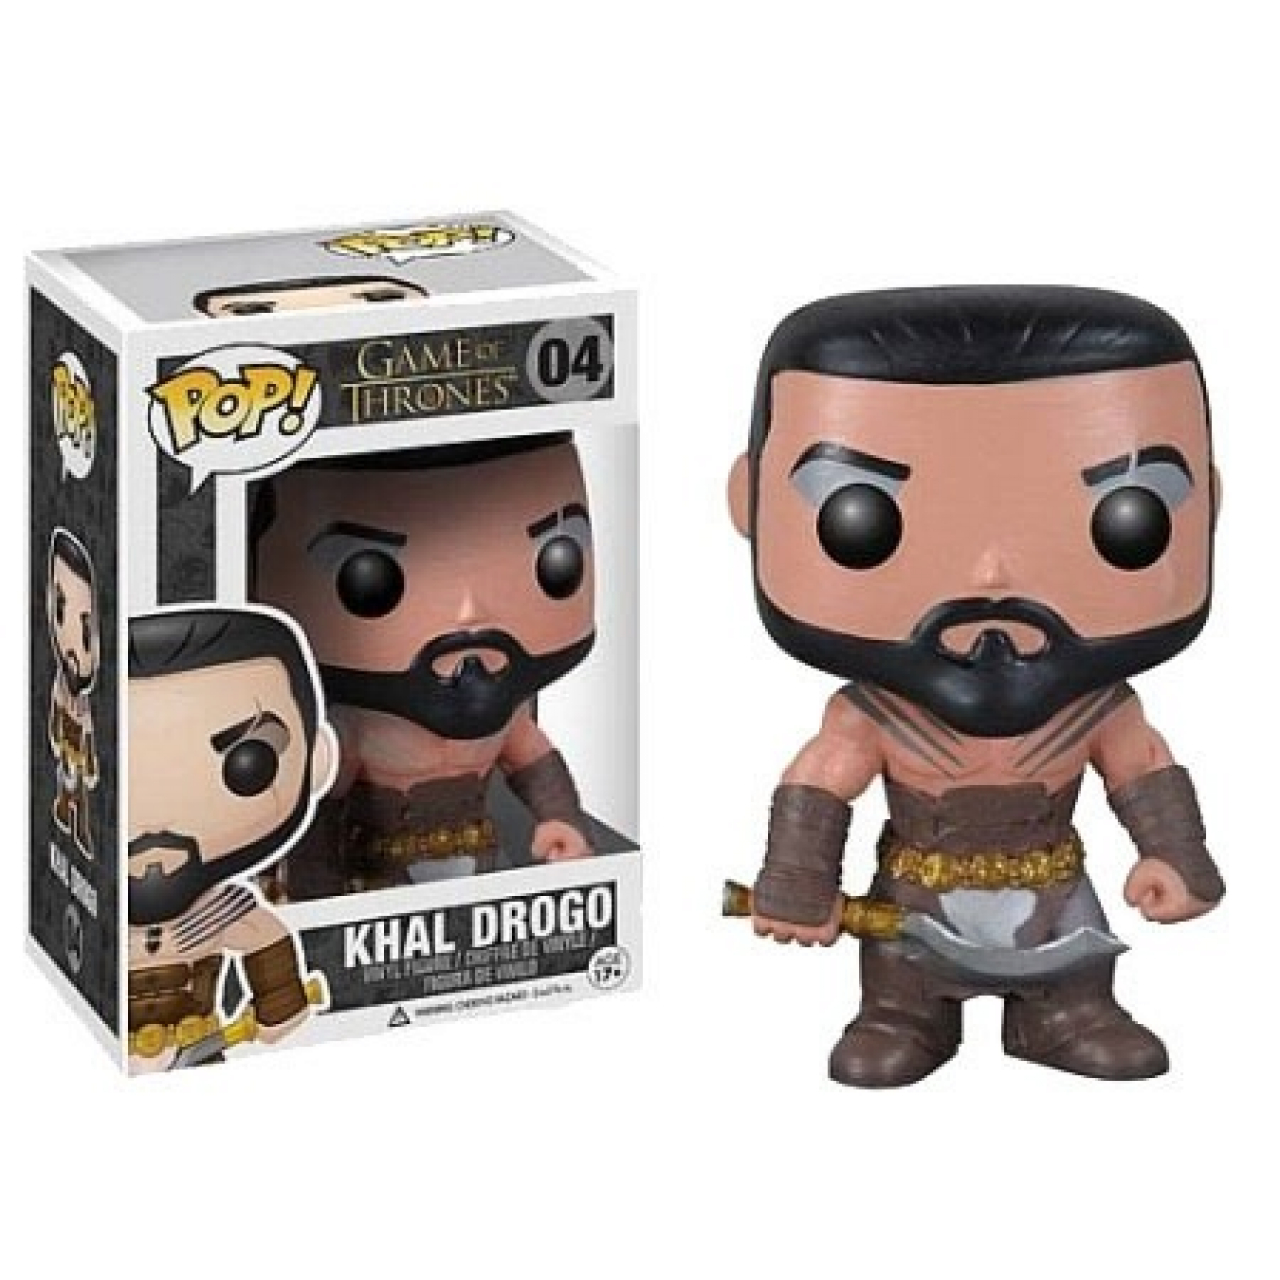 Game of Thrones POP! Vinyl Figure Khal Drogo 10 cm